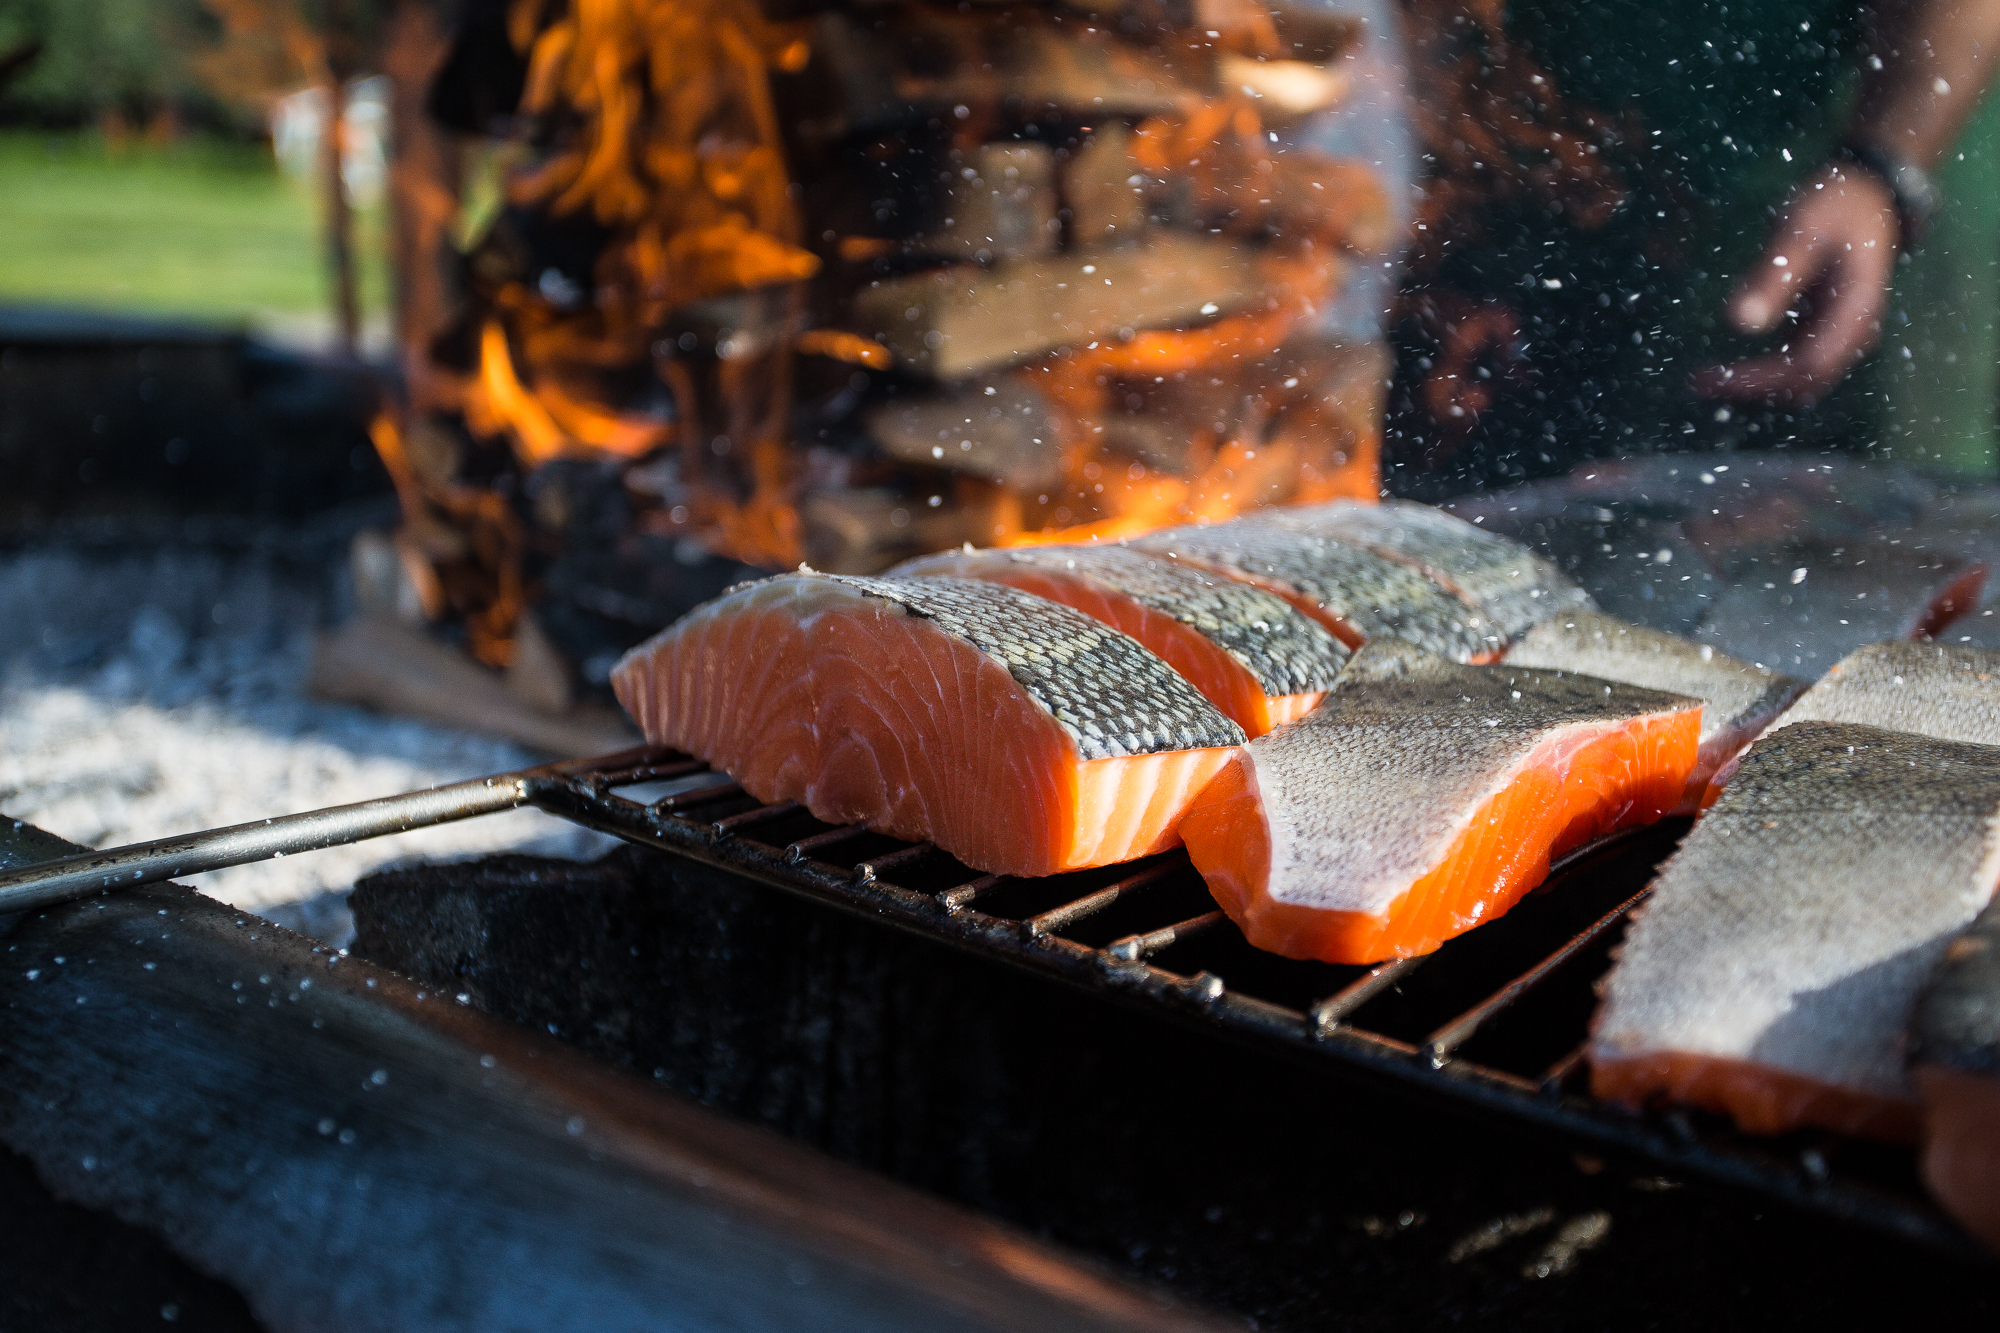 A feast of wood-fire grilled Taku River sockeye salmon, which labored over by the staff of the Taku River Lodge during an extensive cooking and smoking process, awaits. The salmon of the Taku River, like those of every river, stream and creek that dots the Tongass, depend on stable, clean, wild habitat to thrive (photo: Chad Shmukler).